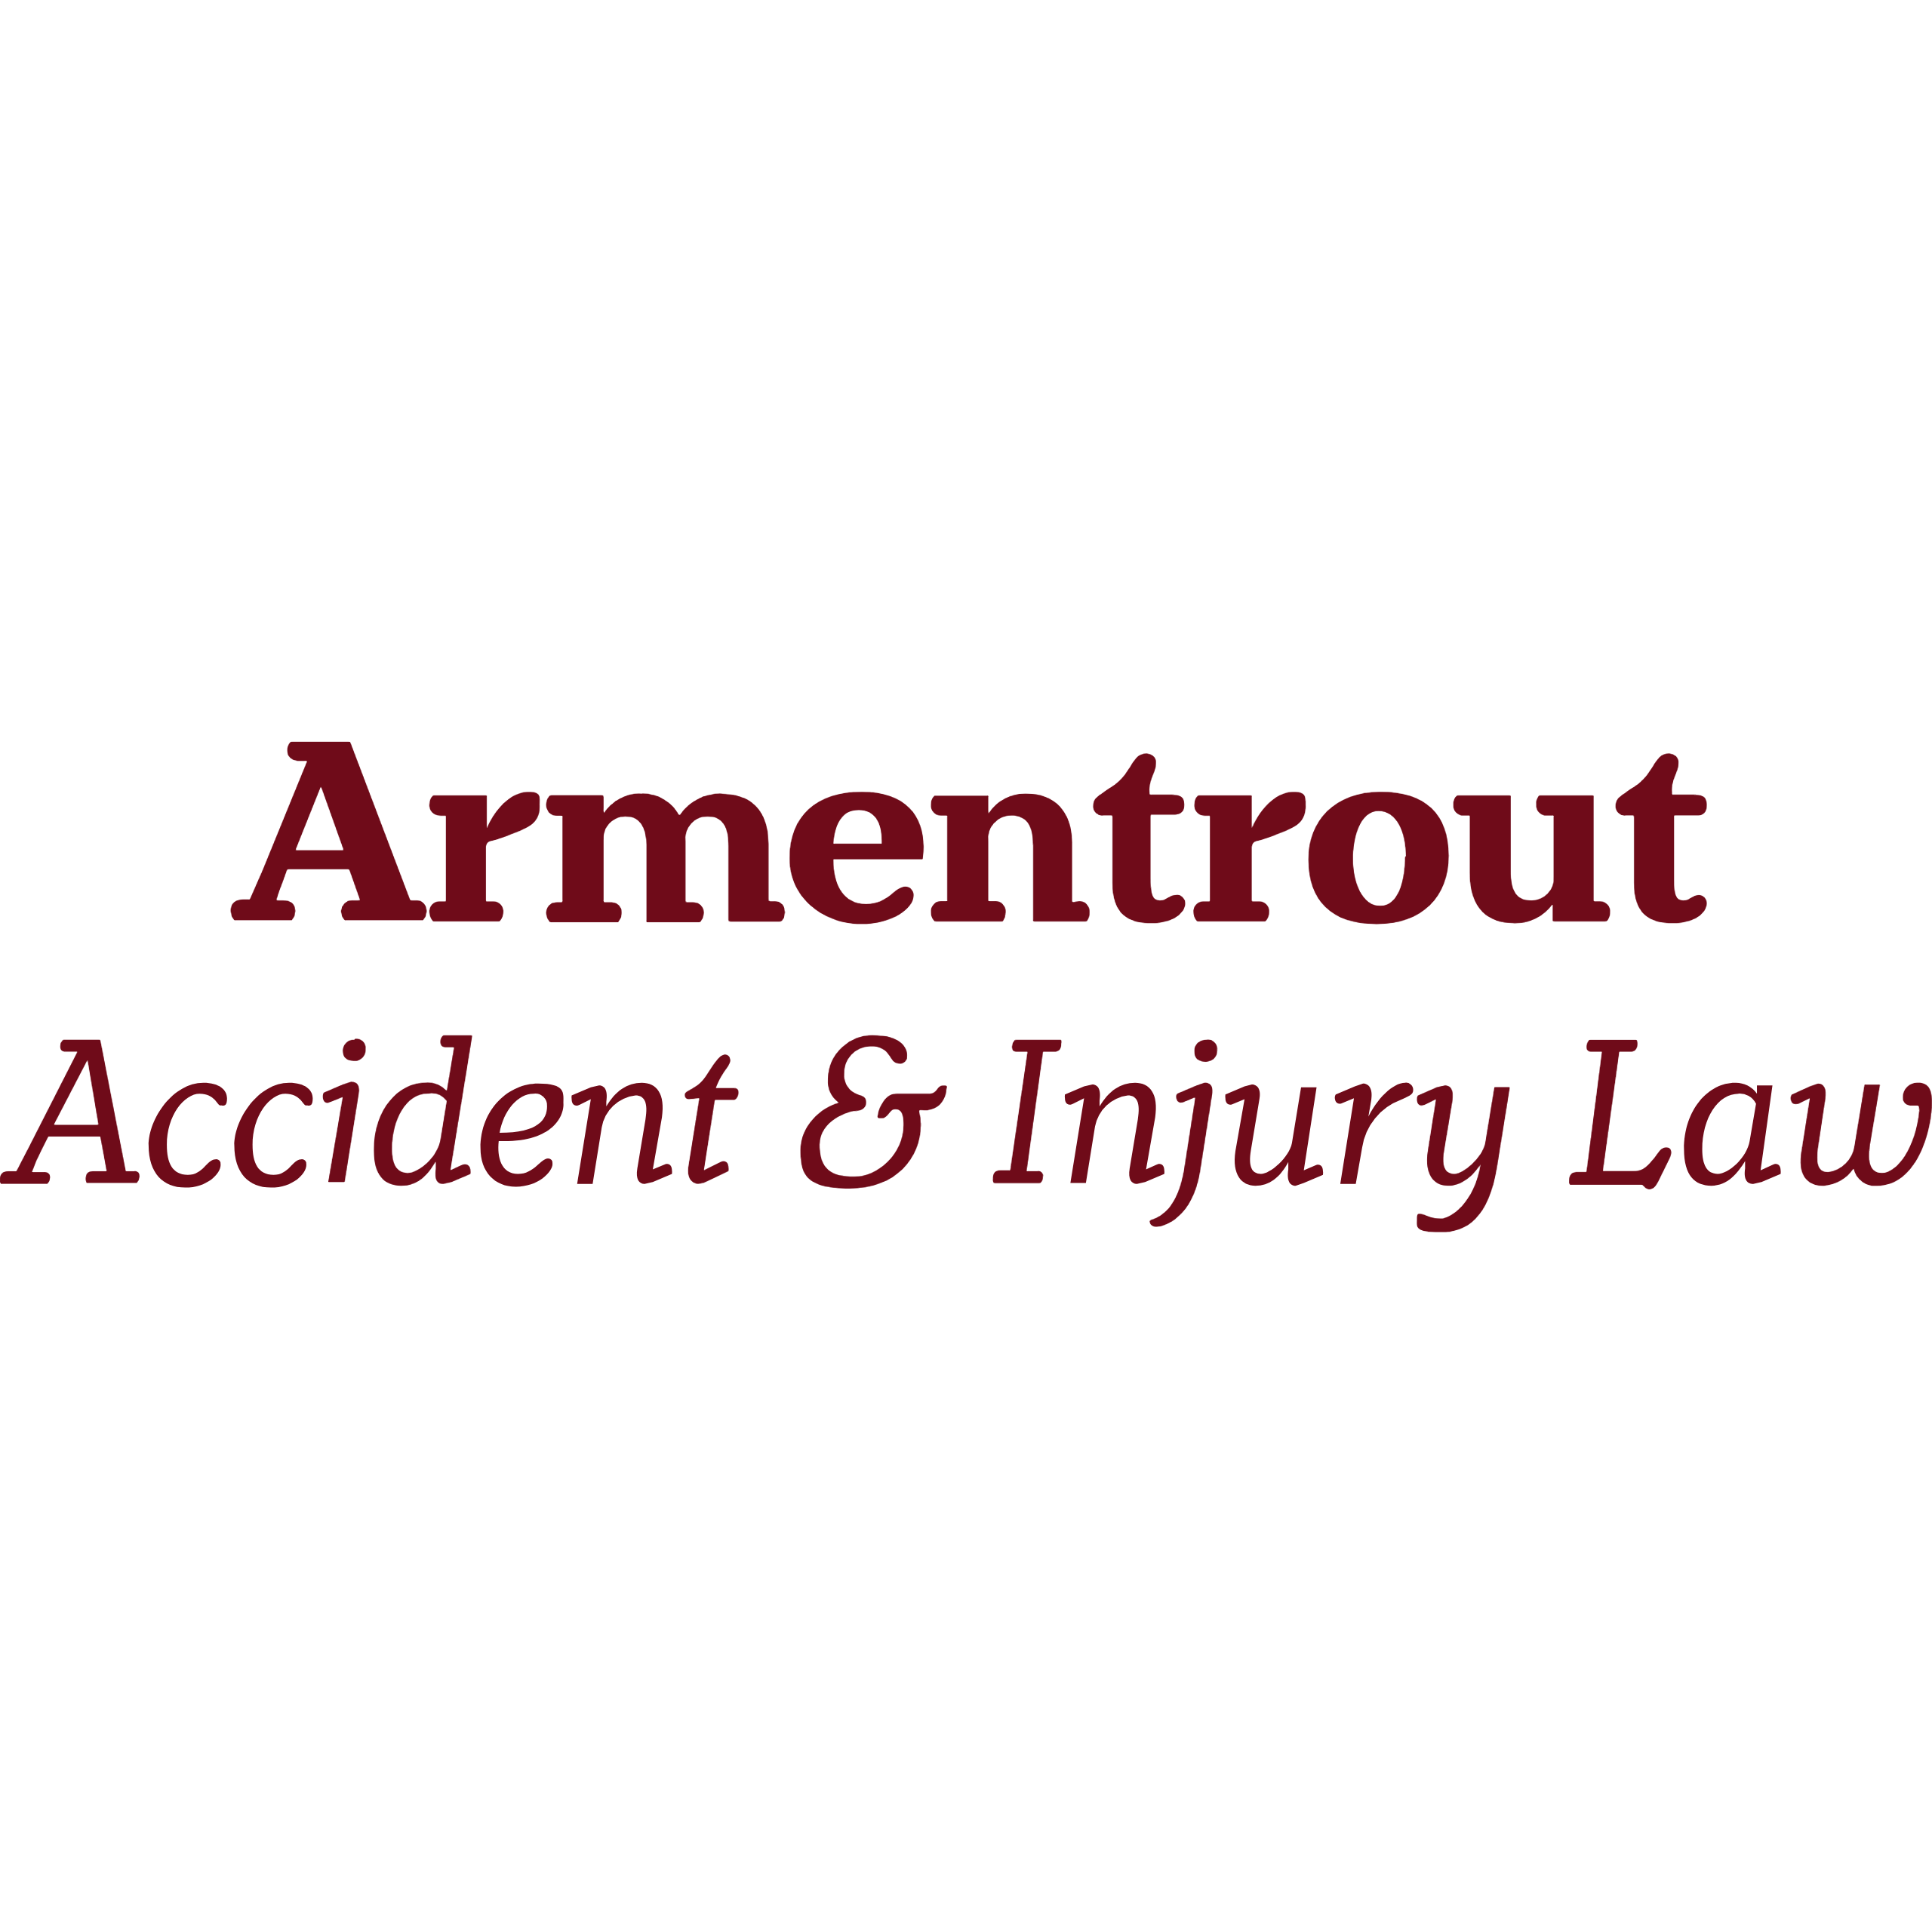 Armentrout Accident & Injury Law